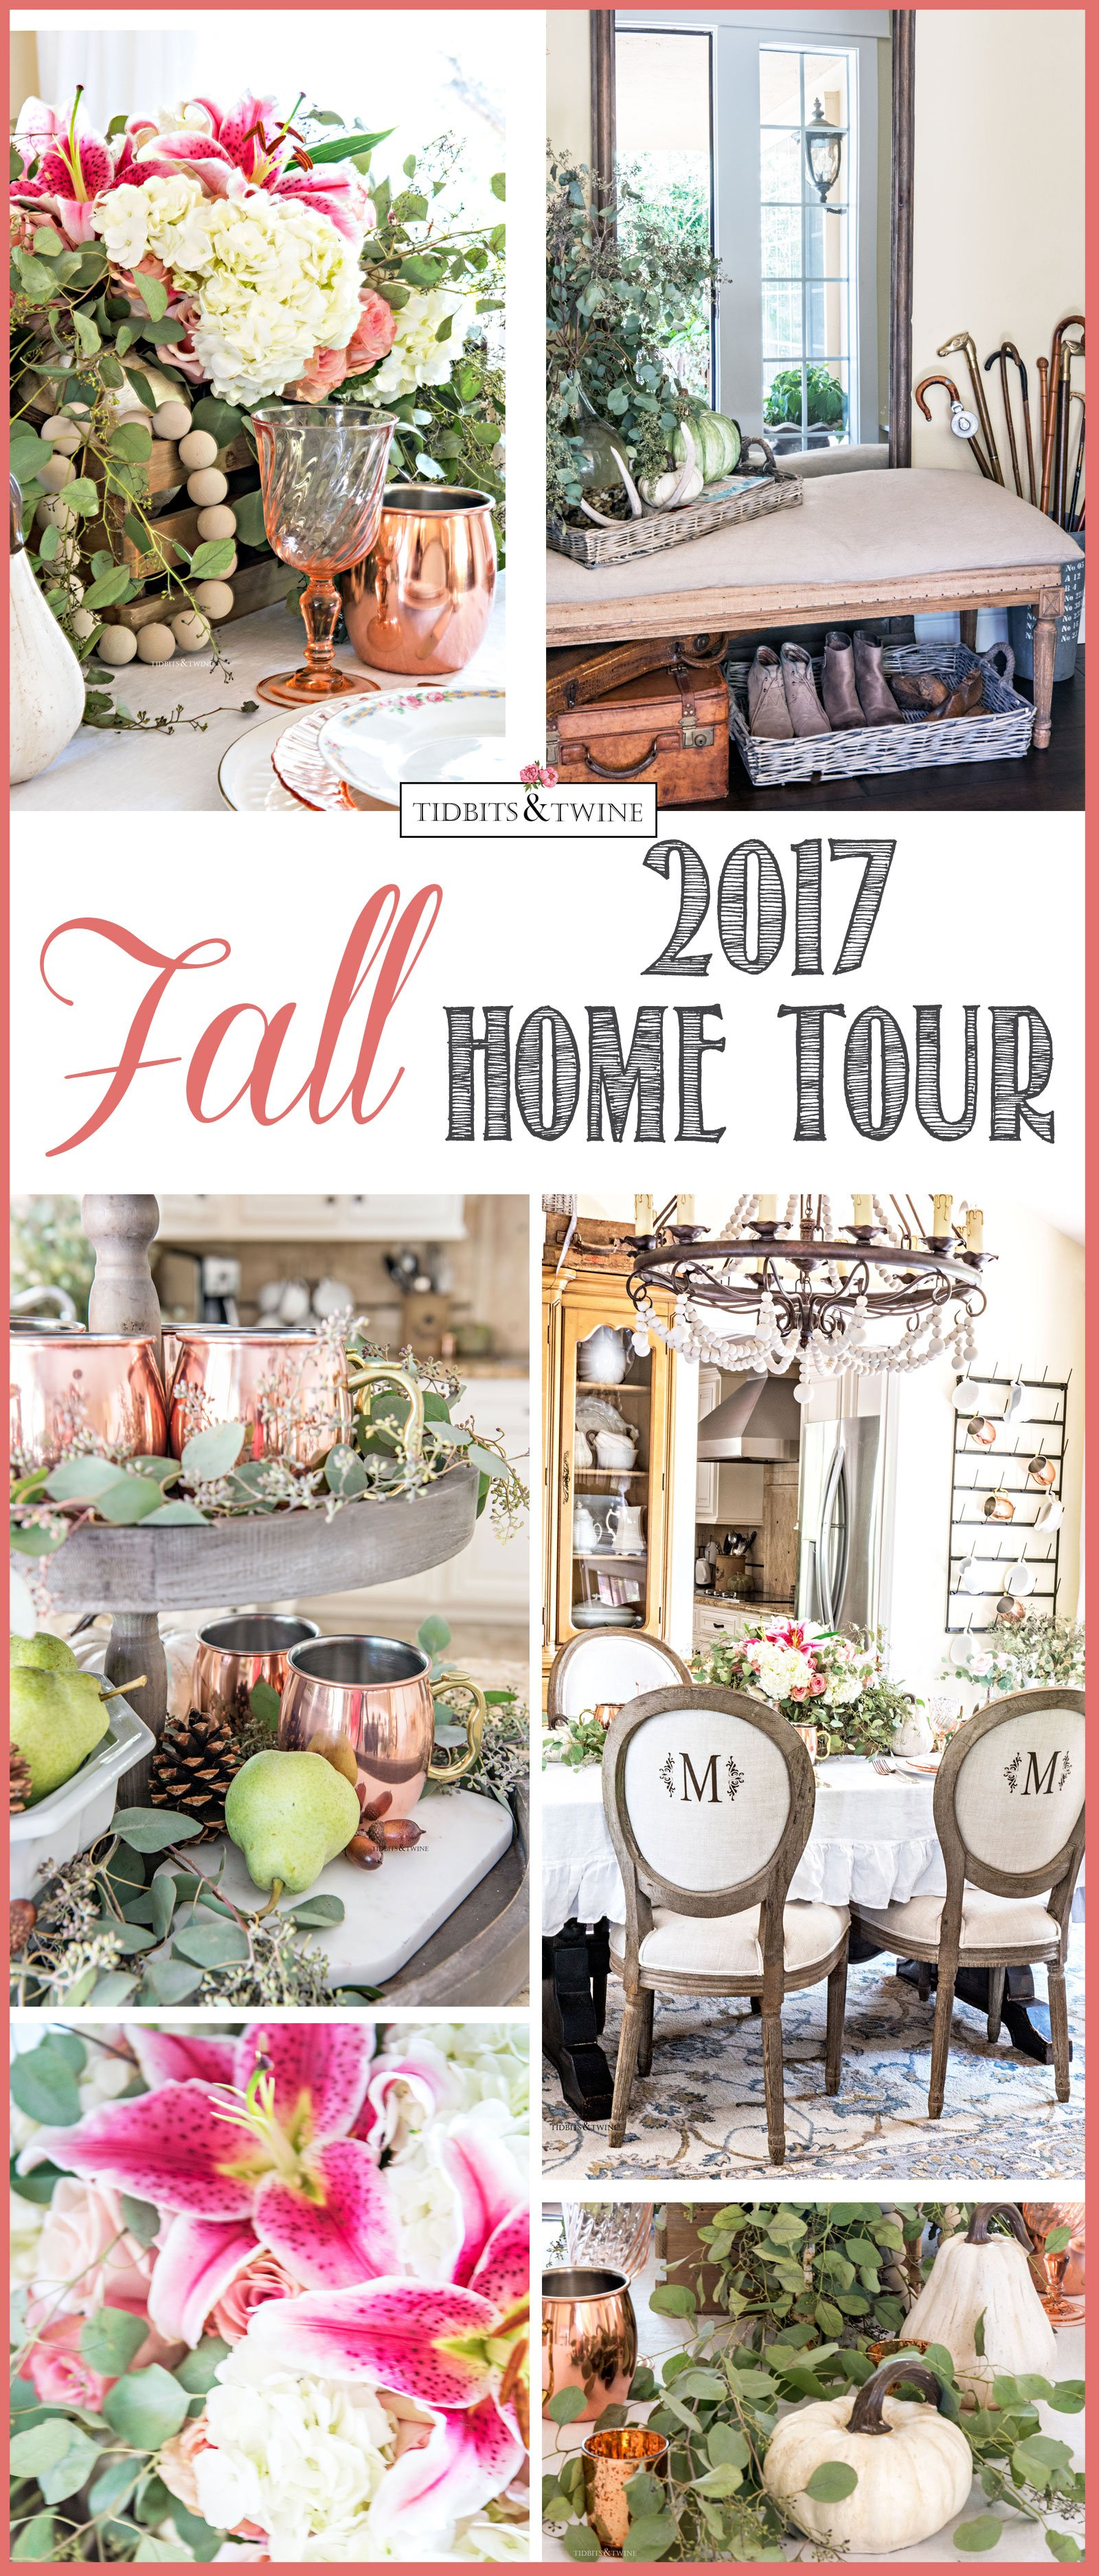 Tidbits&Twine Fall Home Tour 2017